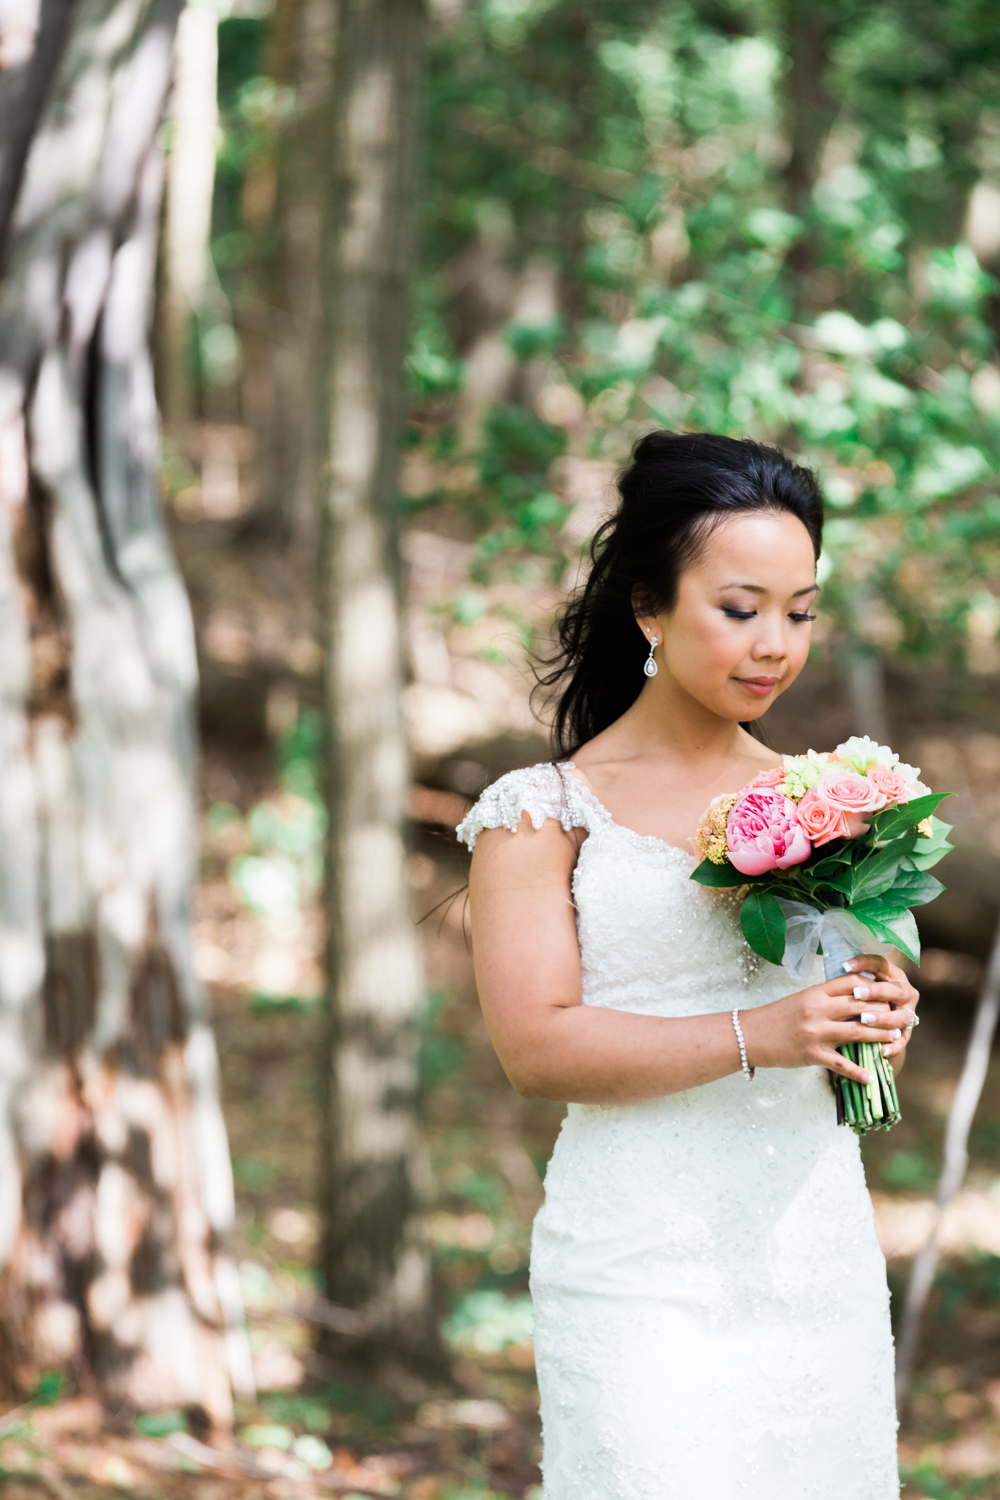 saphire-estate-sharon-wedding-photography-23